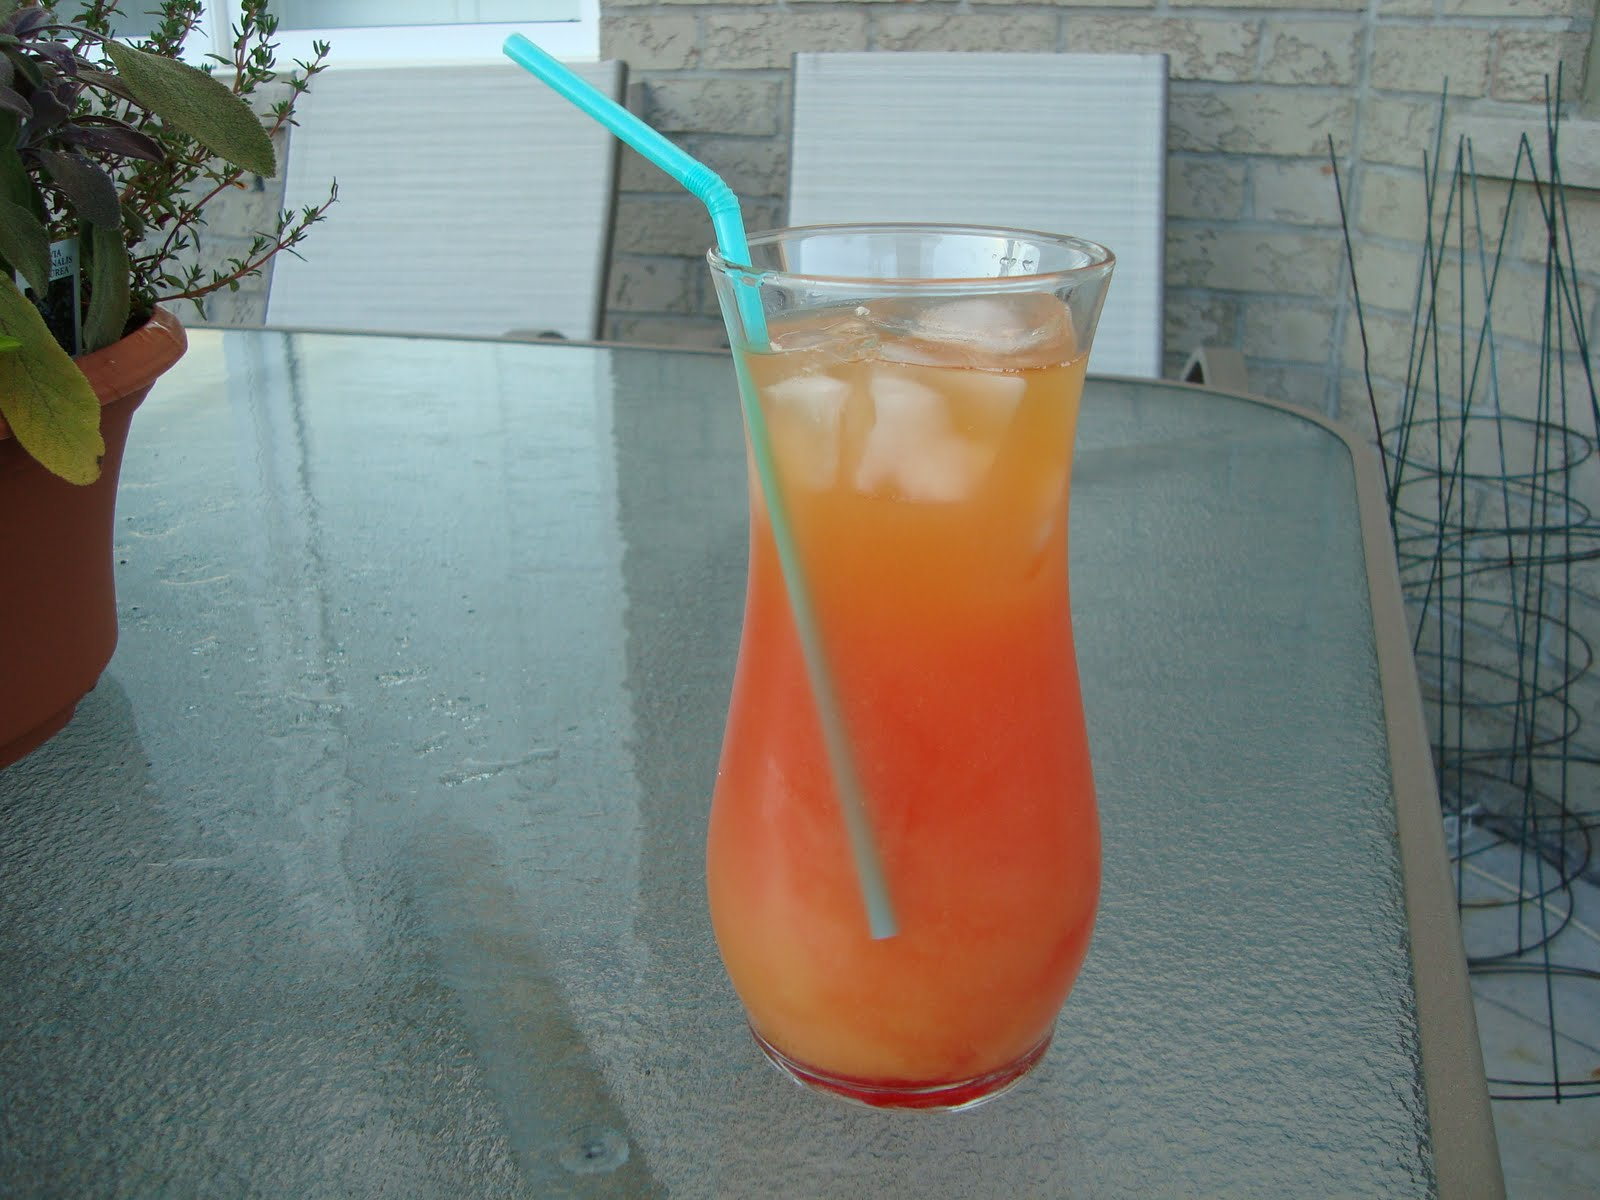 kimspirations malibu hurricane my fav summer drink kimspirations malibu hurricane my fav summer drink